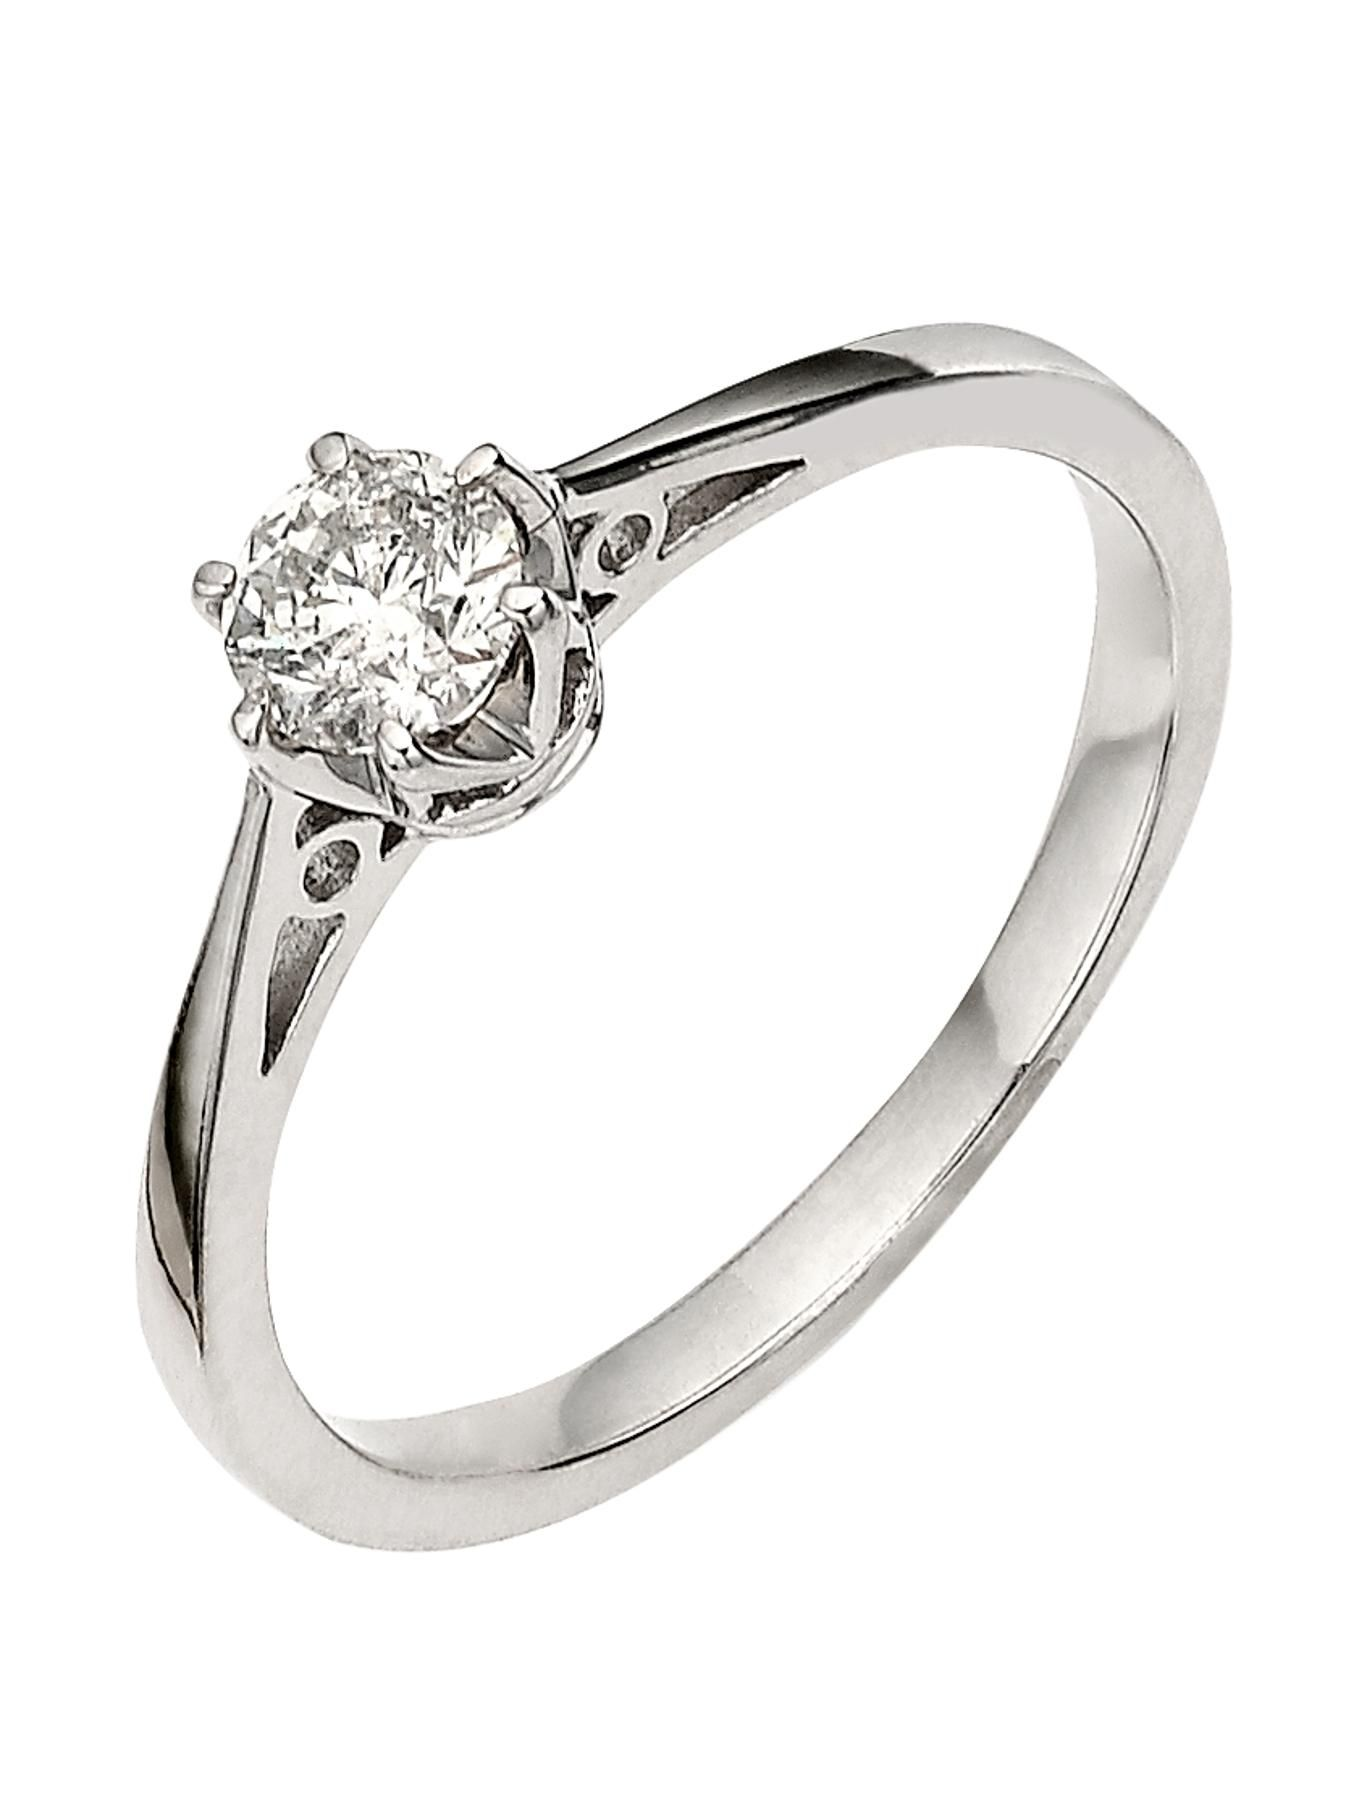 Diamond Solitaire Engagement 9ct White Gold Ring RRP £635 Size N